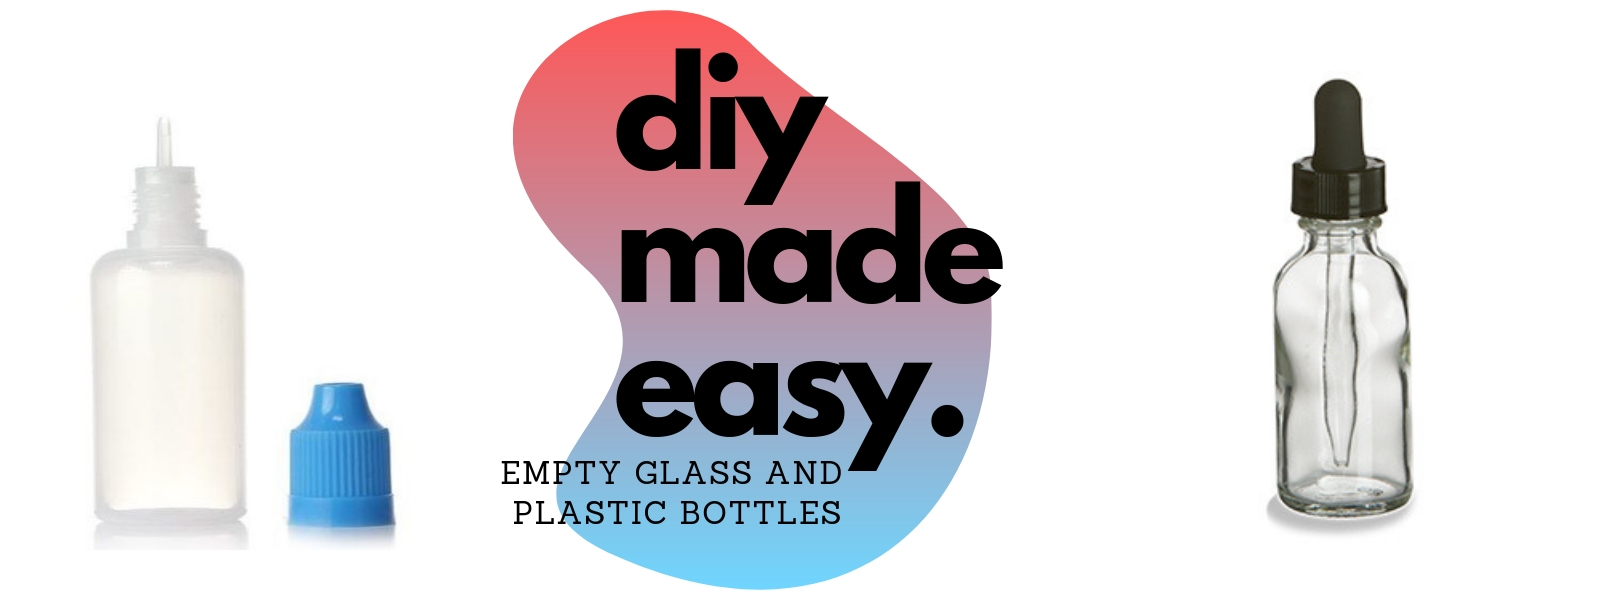 DIY Made Easy At Central Vapors